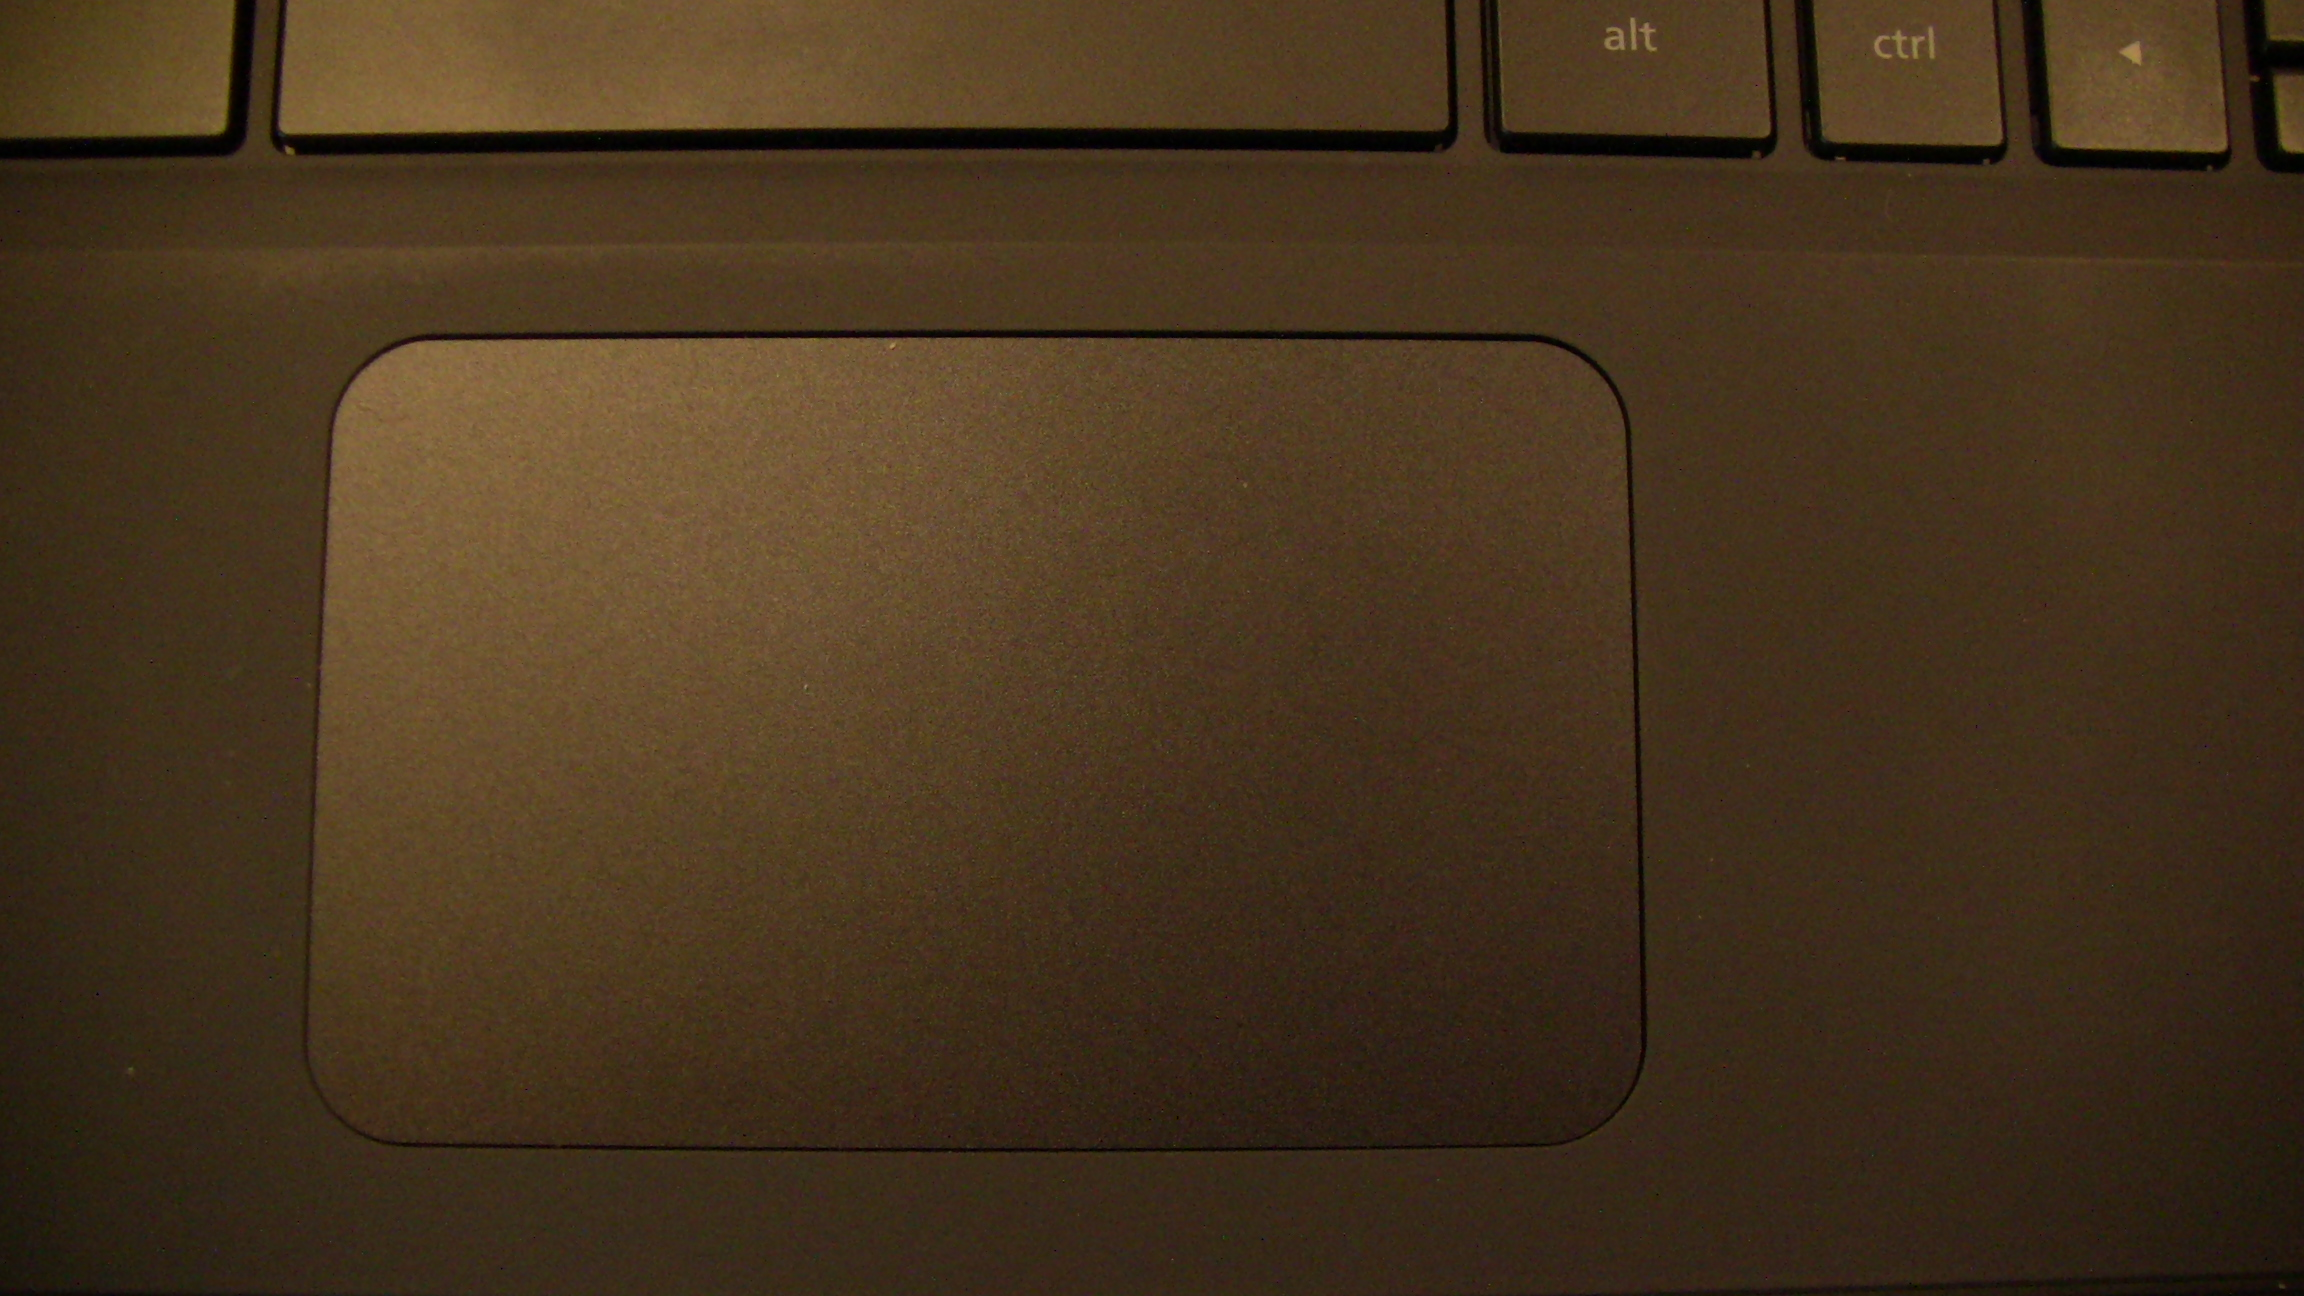 Cr-48 Touchpad